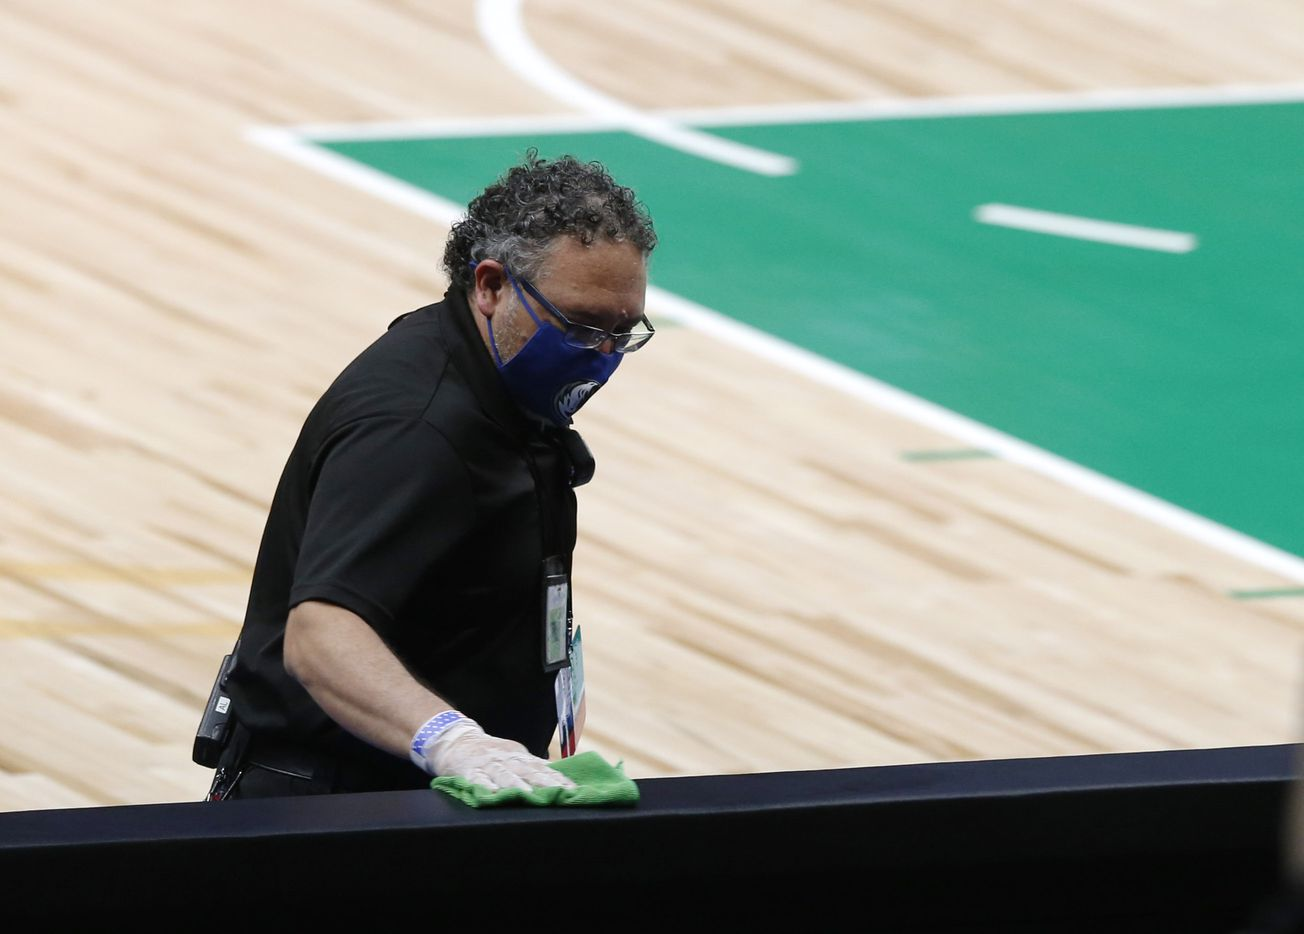 Employees clean the an area next to the court before a game between the Dallas Mavericks and Charlotte Hornets for the home opener at American Airlines Center on Wednesday, December 30, 2020 in Dallas. (Vernon Bryant/The Dallas Morning News)